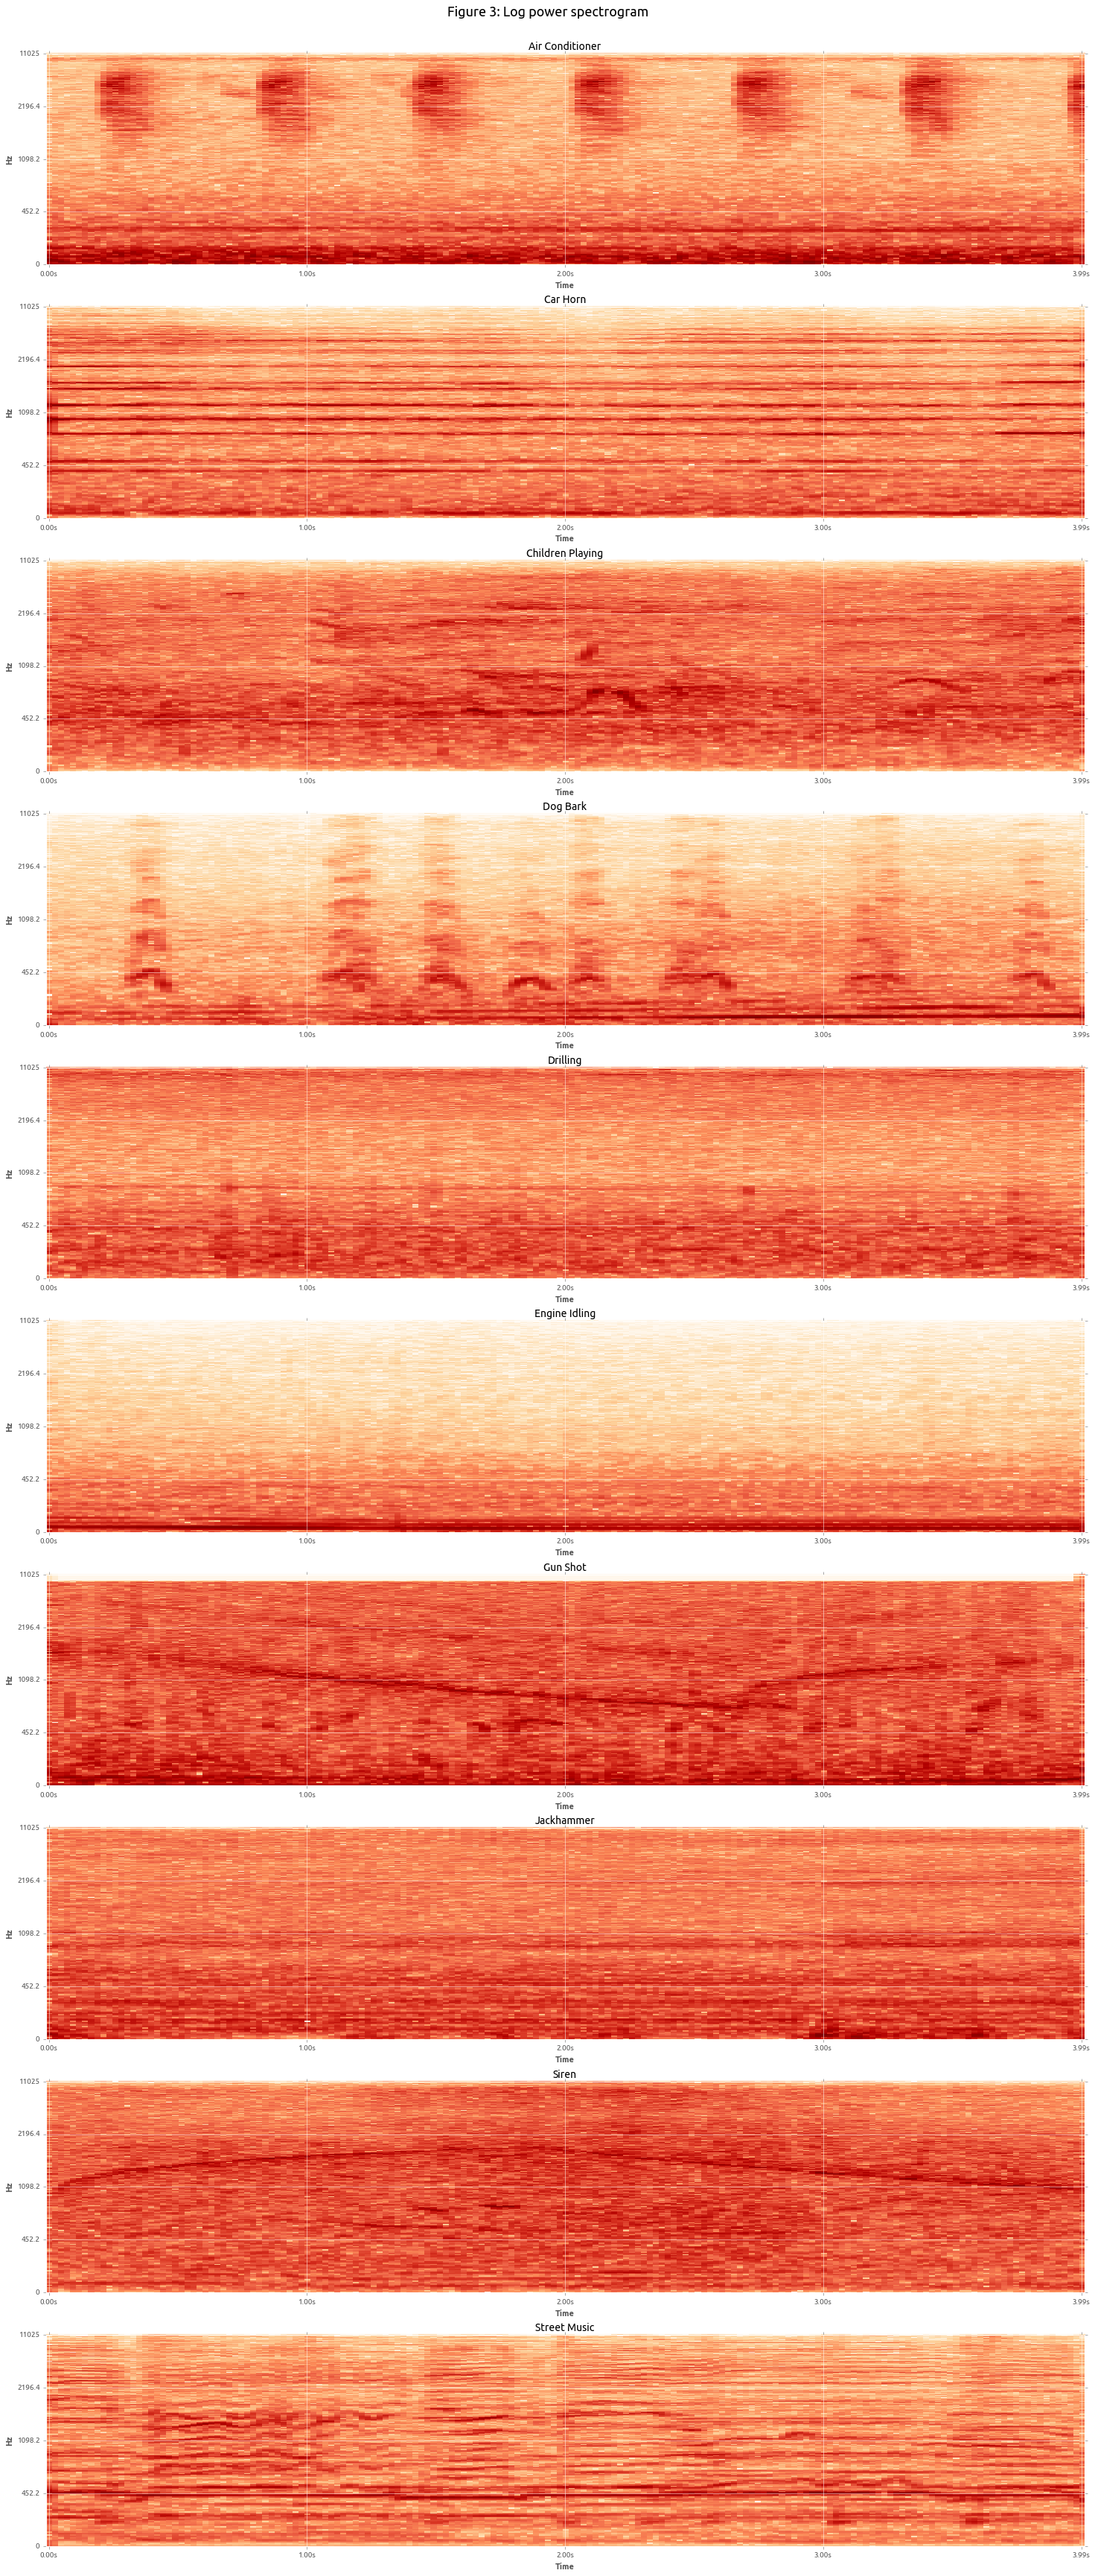 Sound Log Power Spectrogram